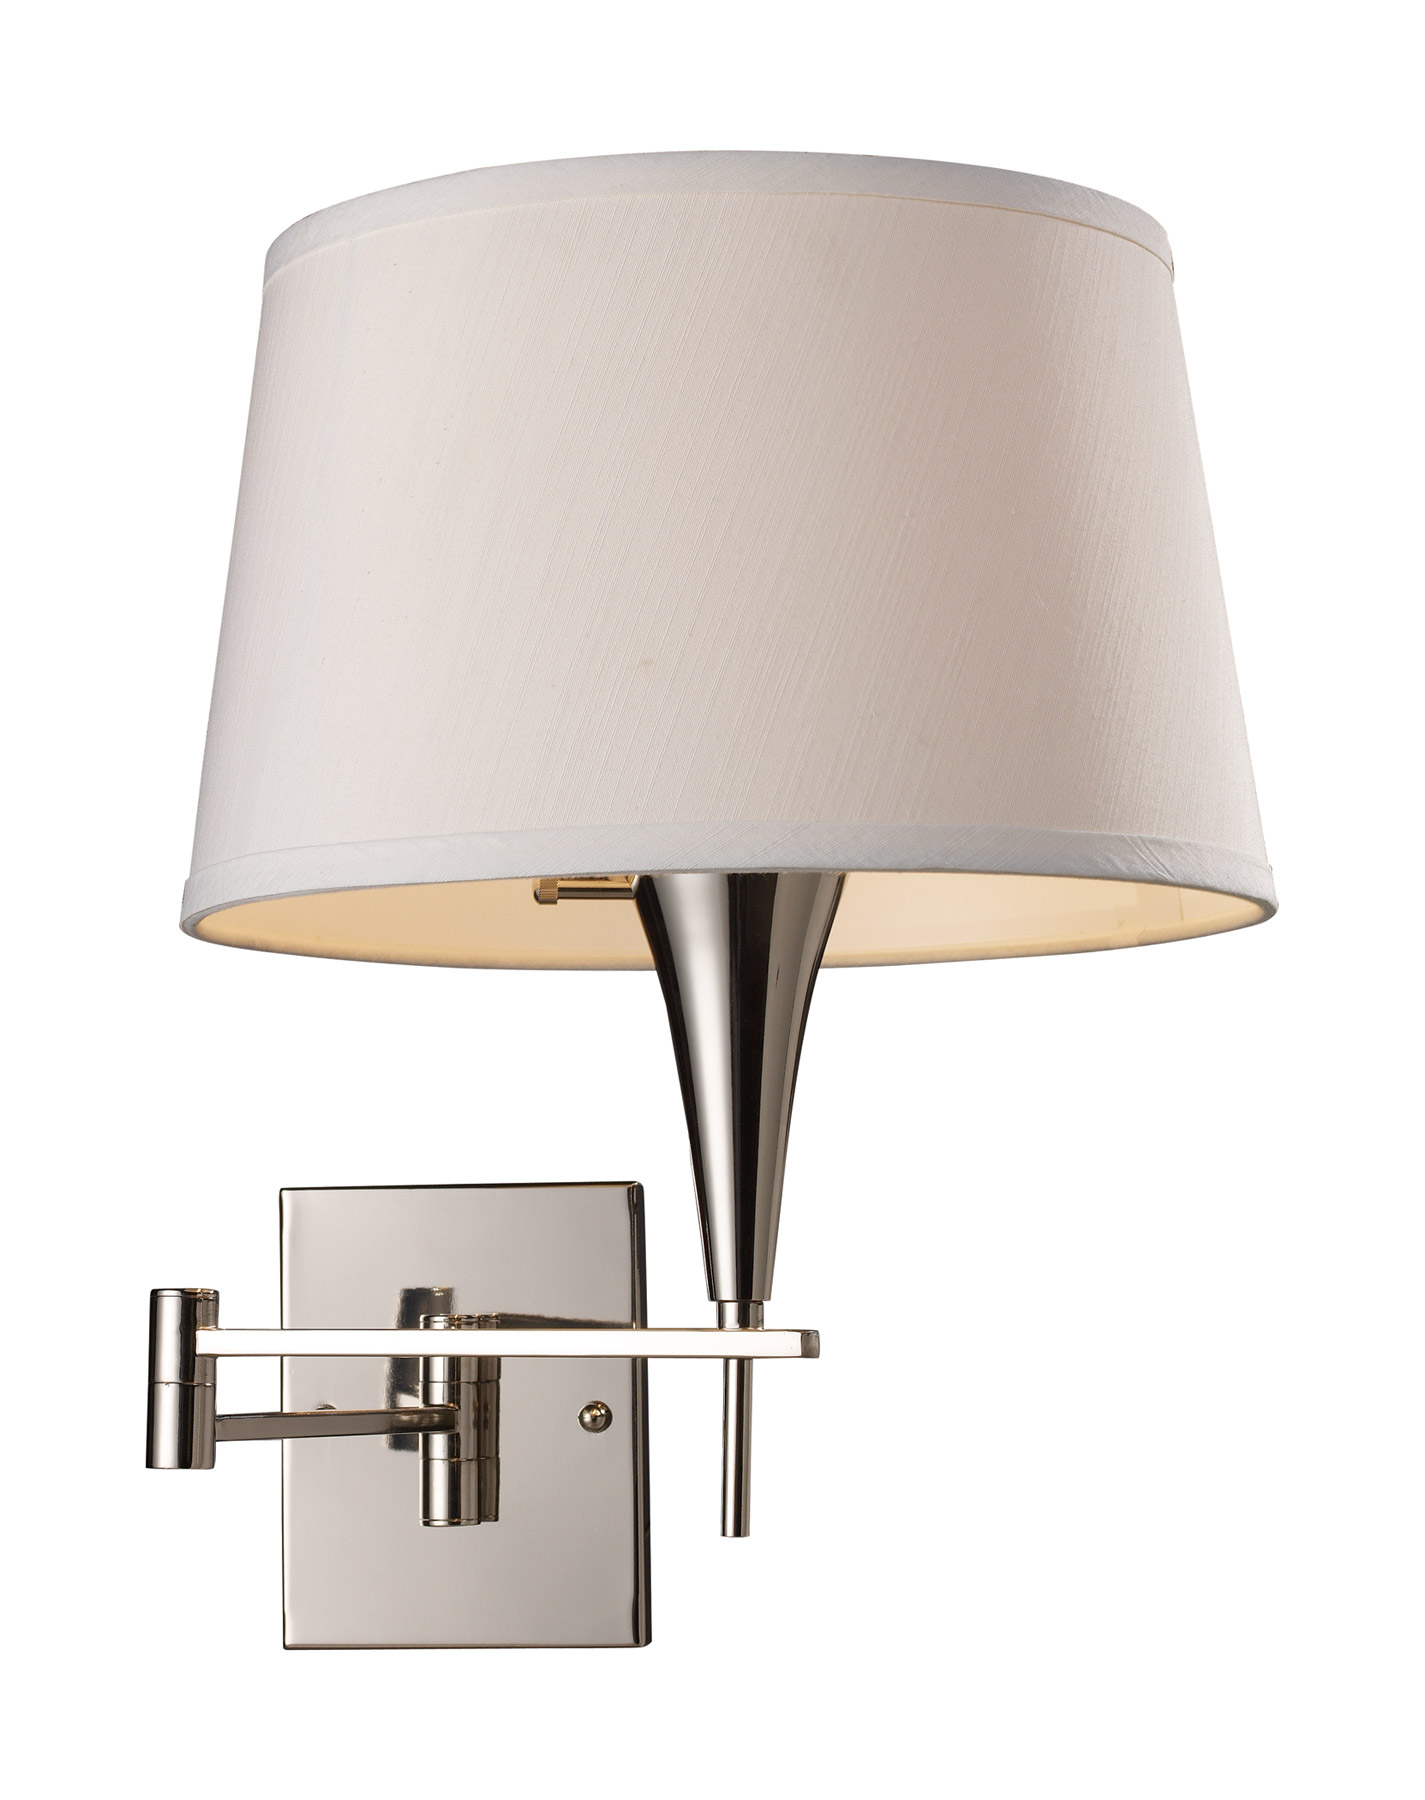 Elk lighting 10108 1 swingarm swing arm wall sconce Beautiful swing arm wall lamps and sconces